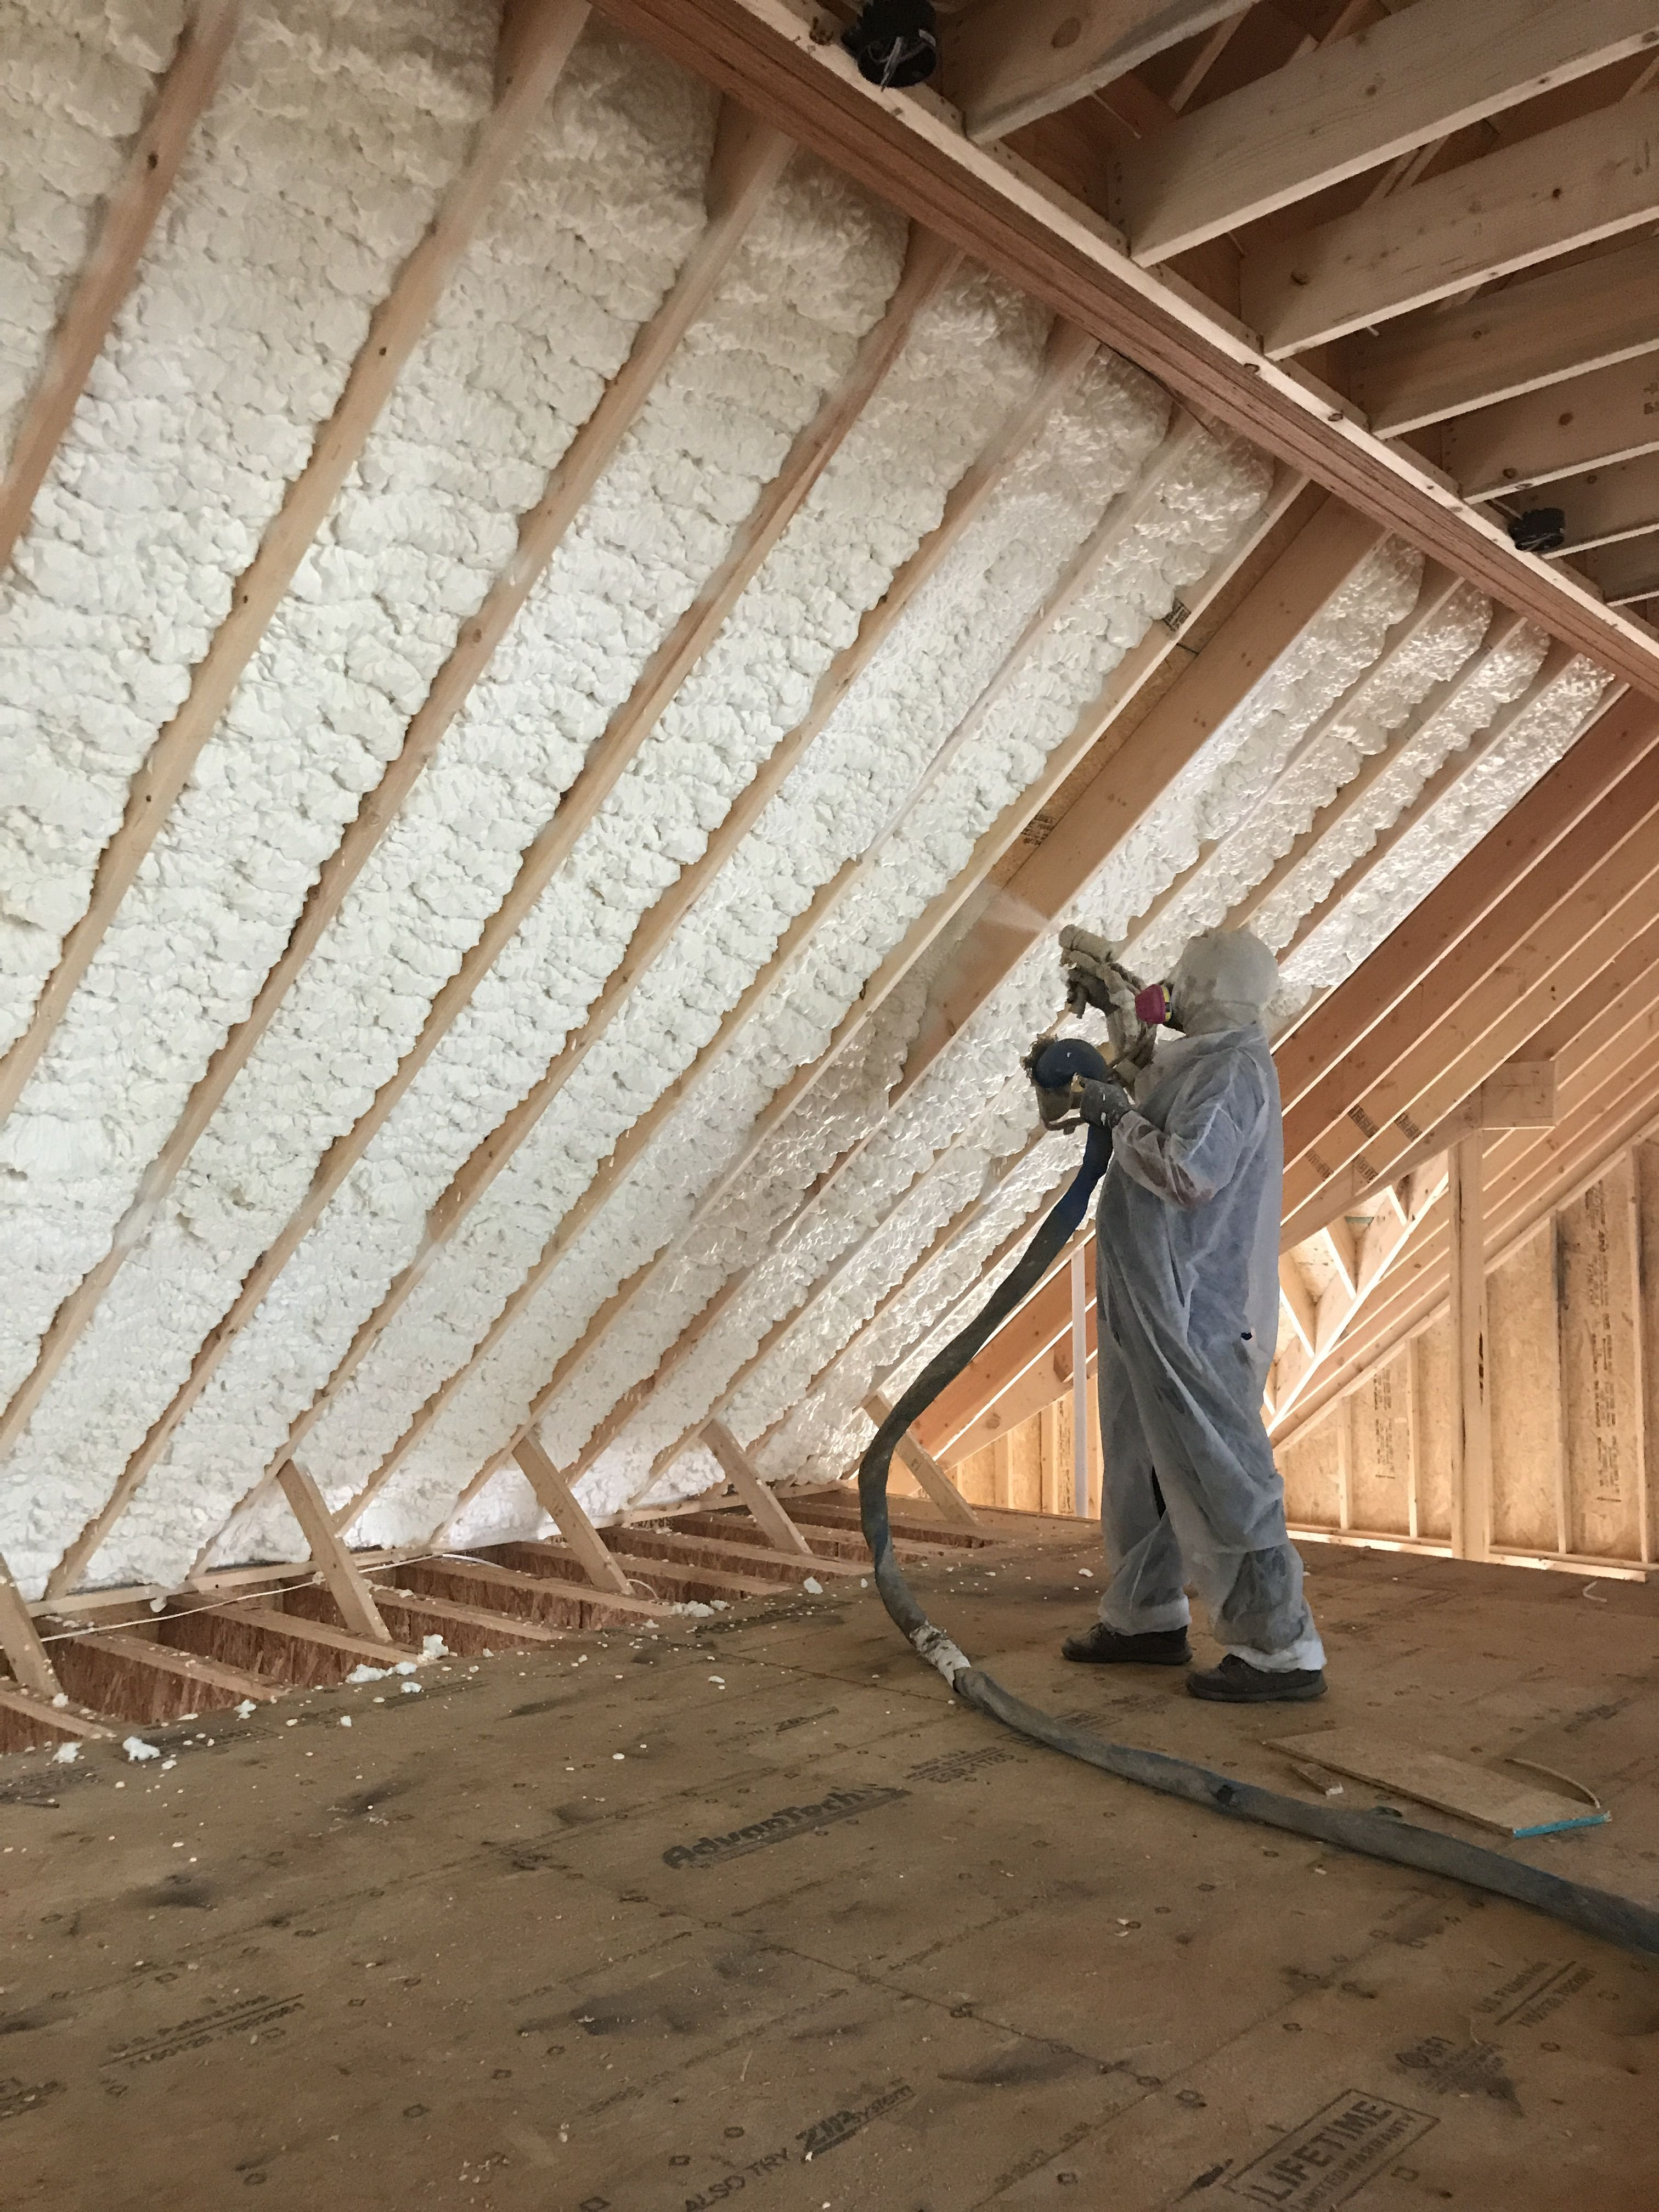 One Of Our Dedicated Workers Installing Spray Foam Insulation For A Lucky New Home Owner Installed By Mpi Foam Spray Foam Insulation Spray Foam Insulation